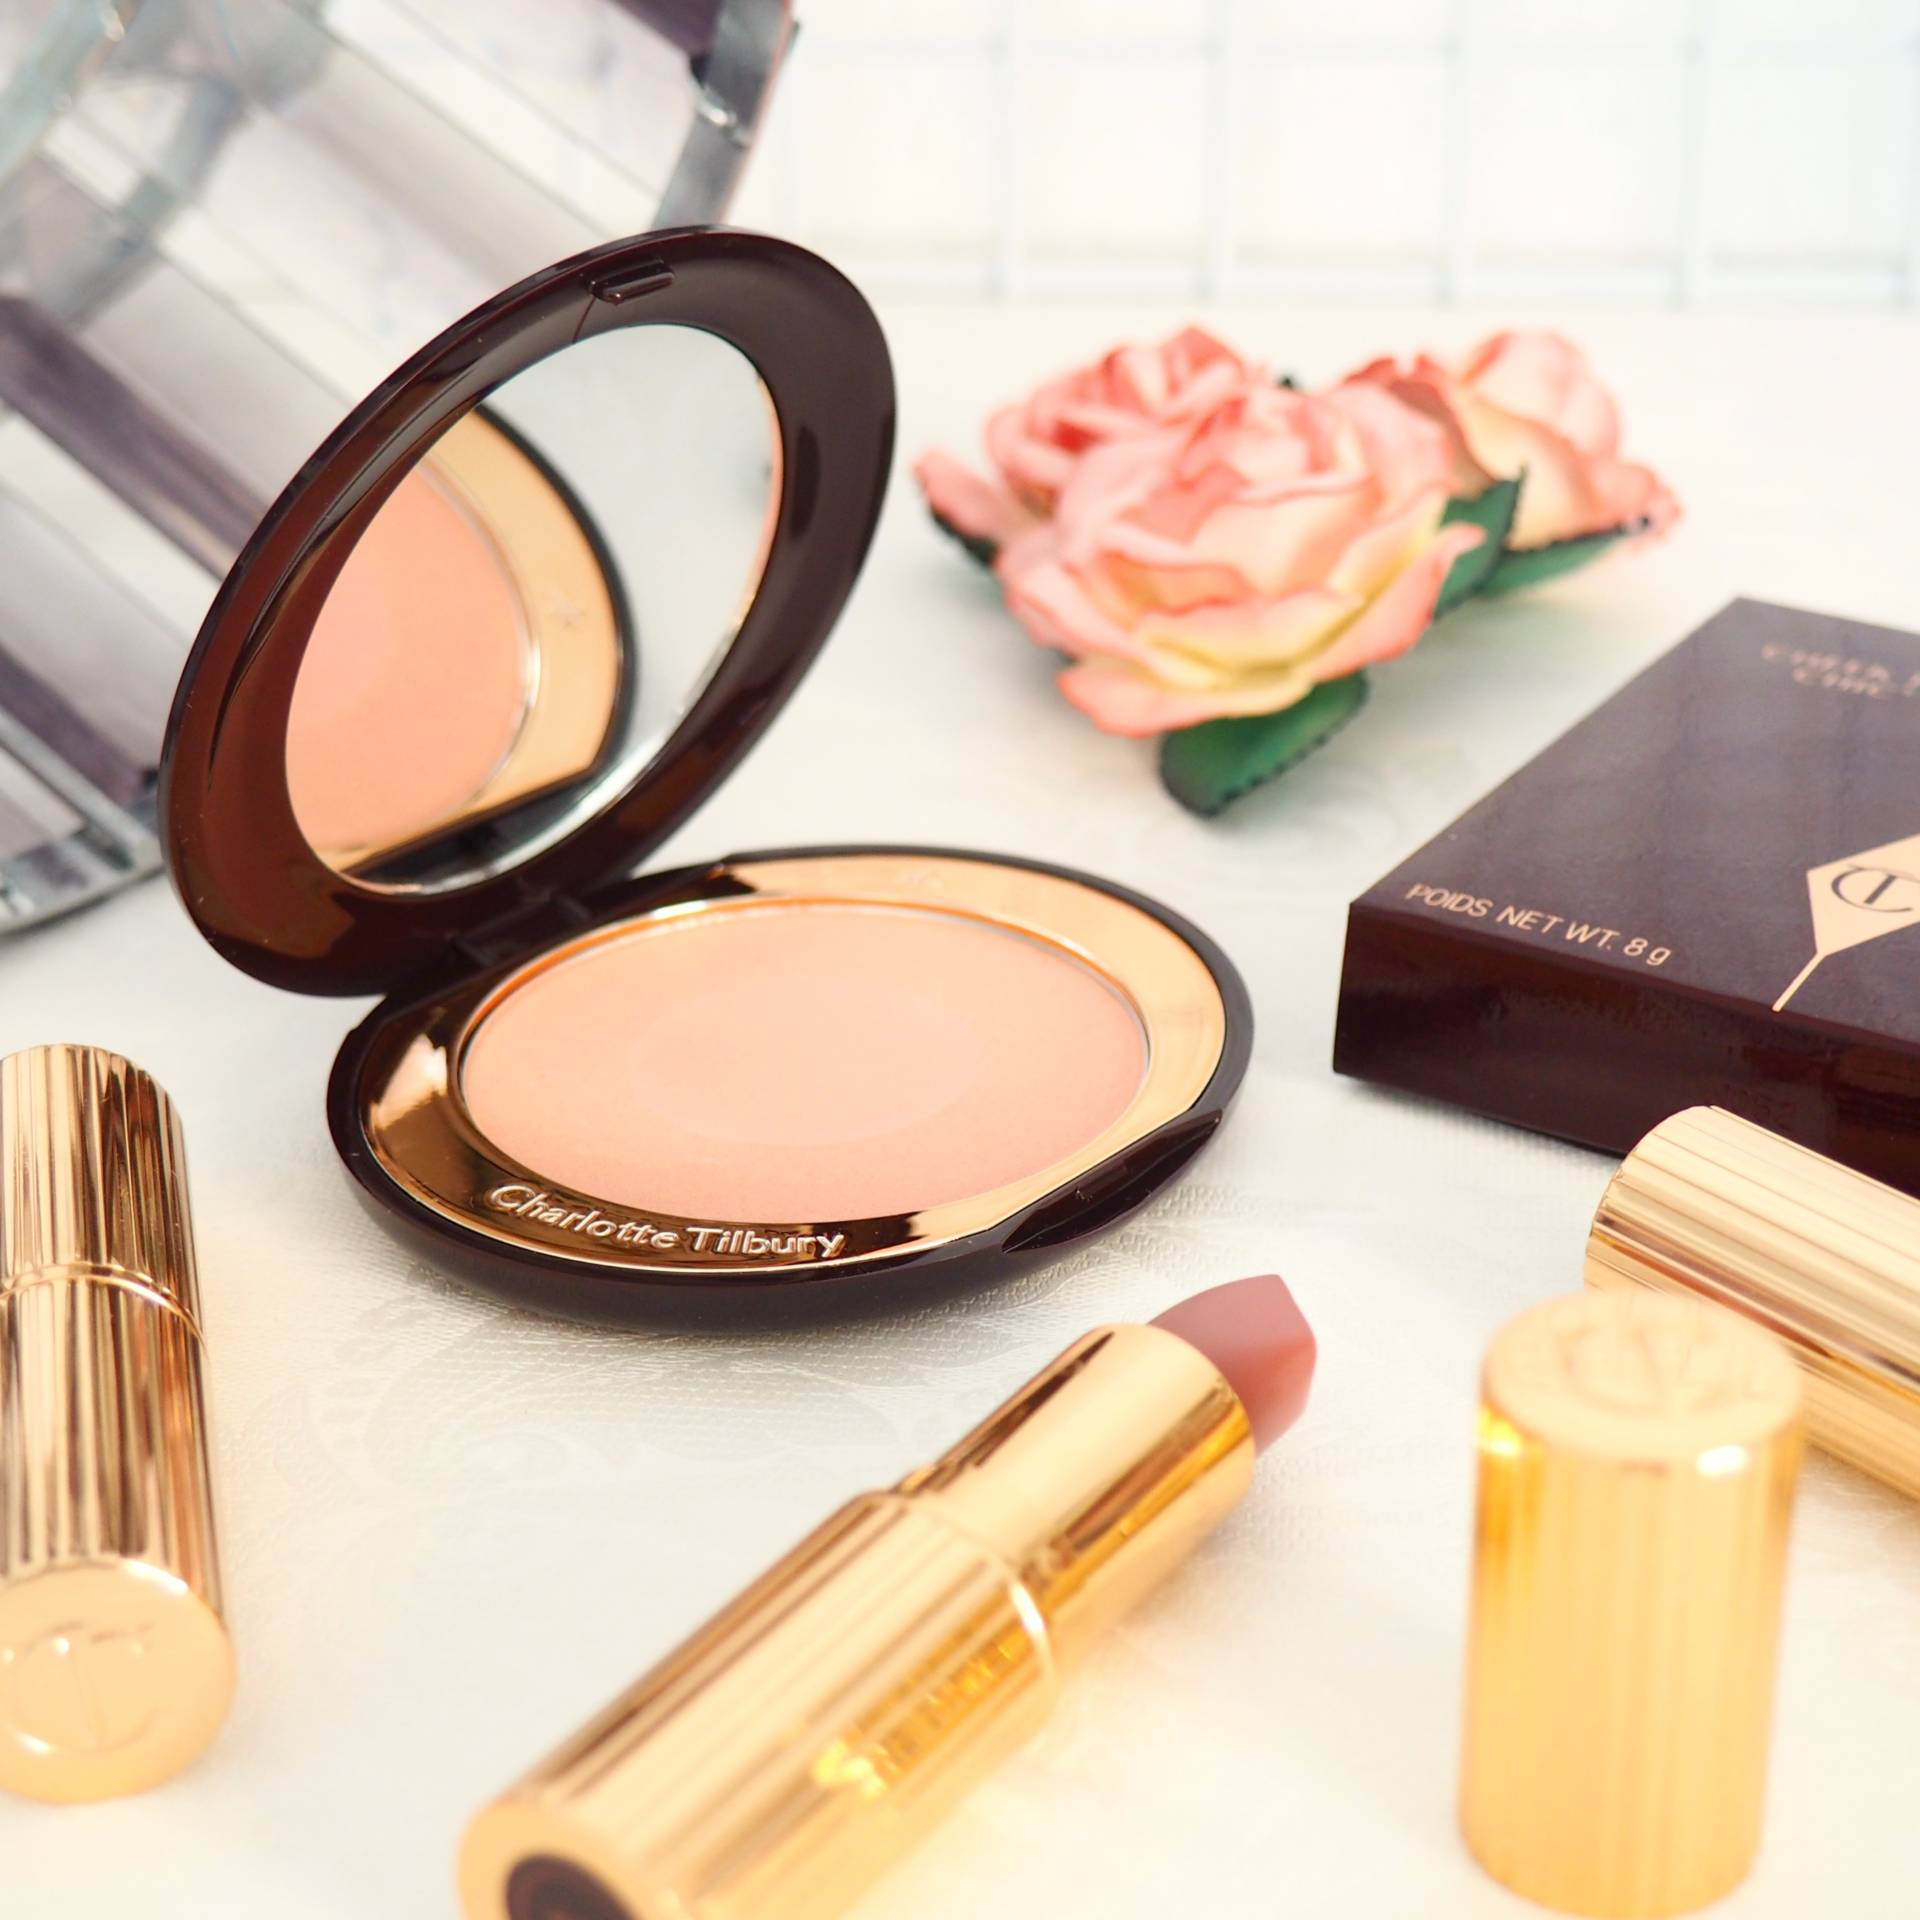 Charlotte Tilbury Cheek to Chic Blush in Ecstasy